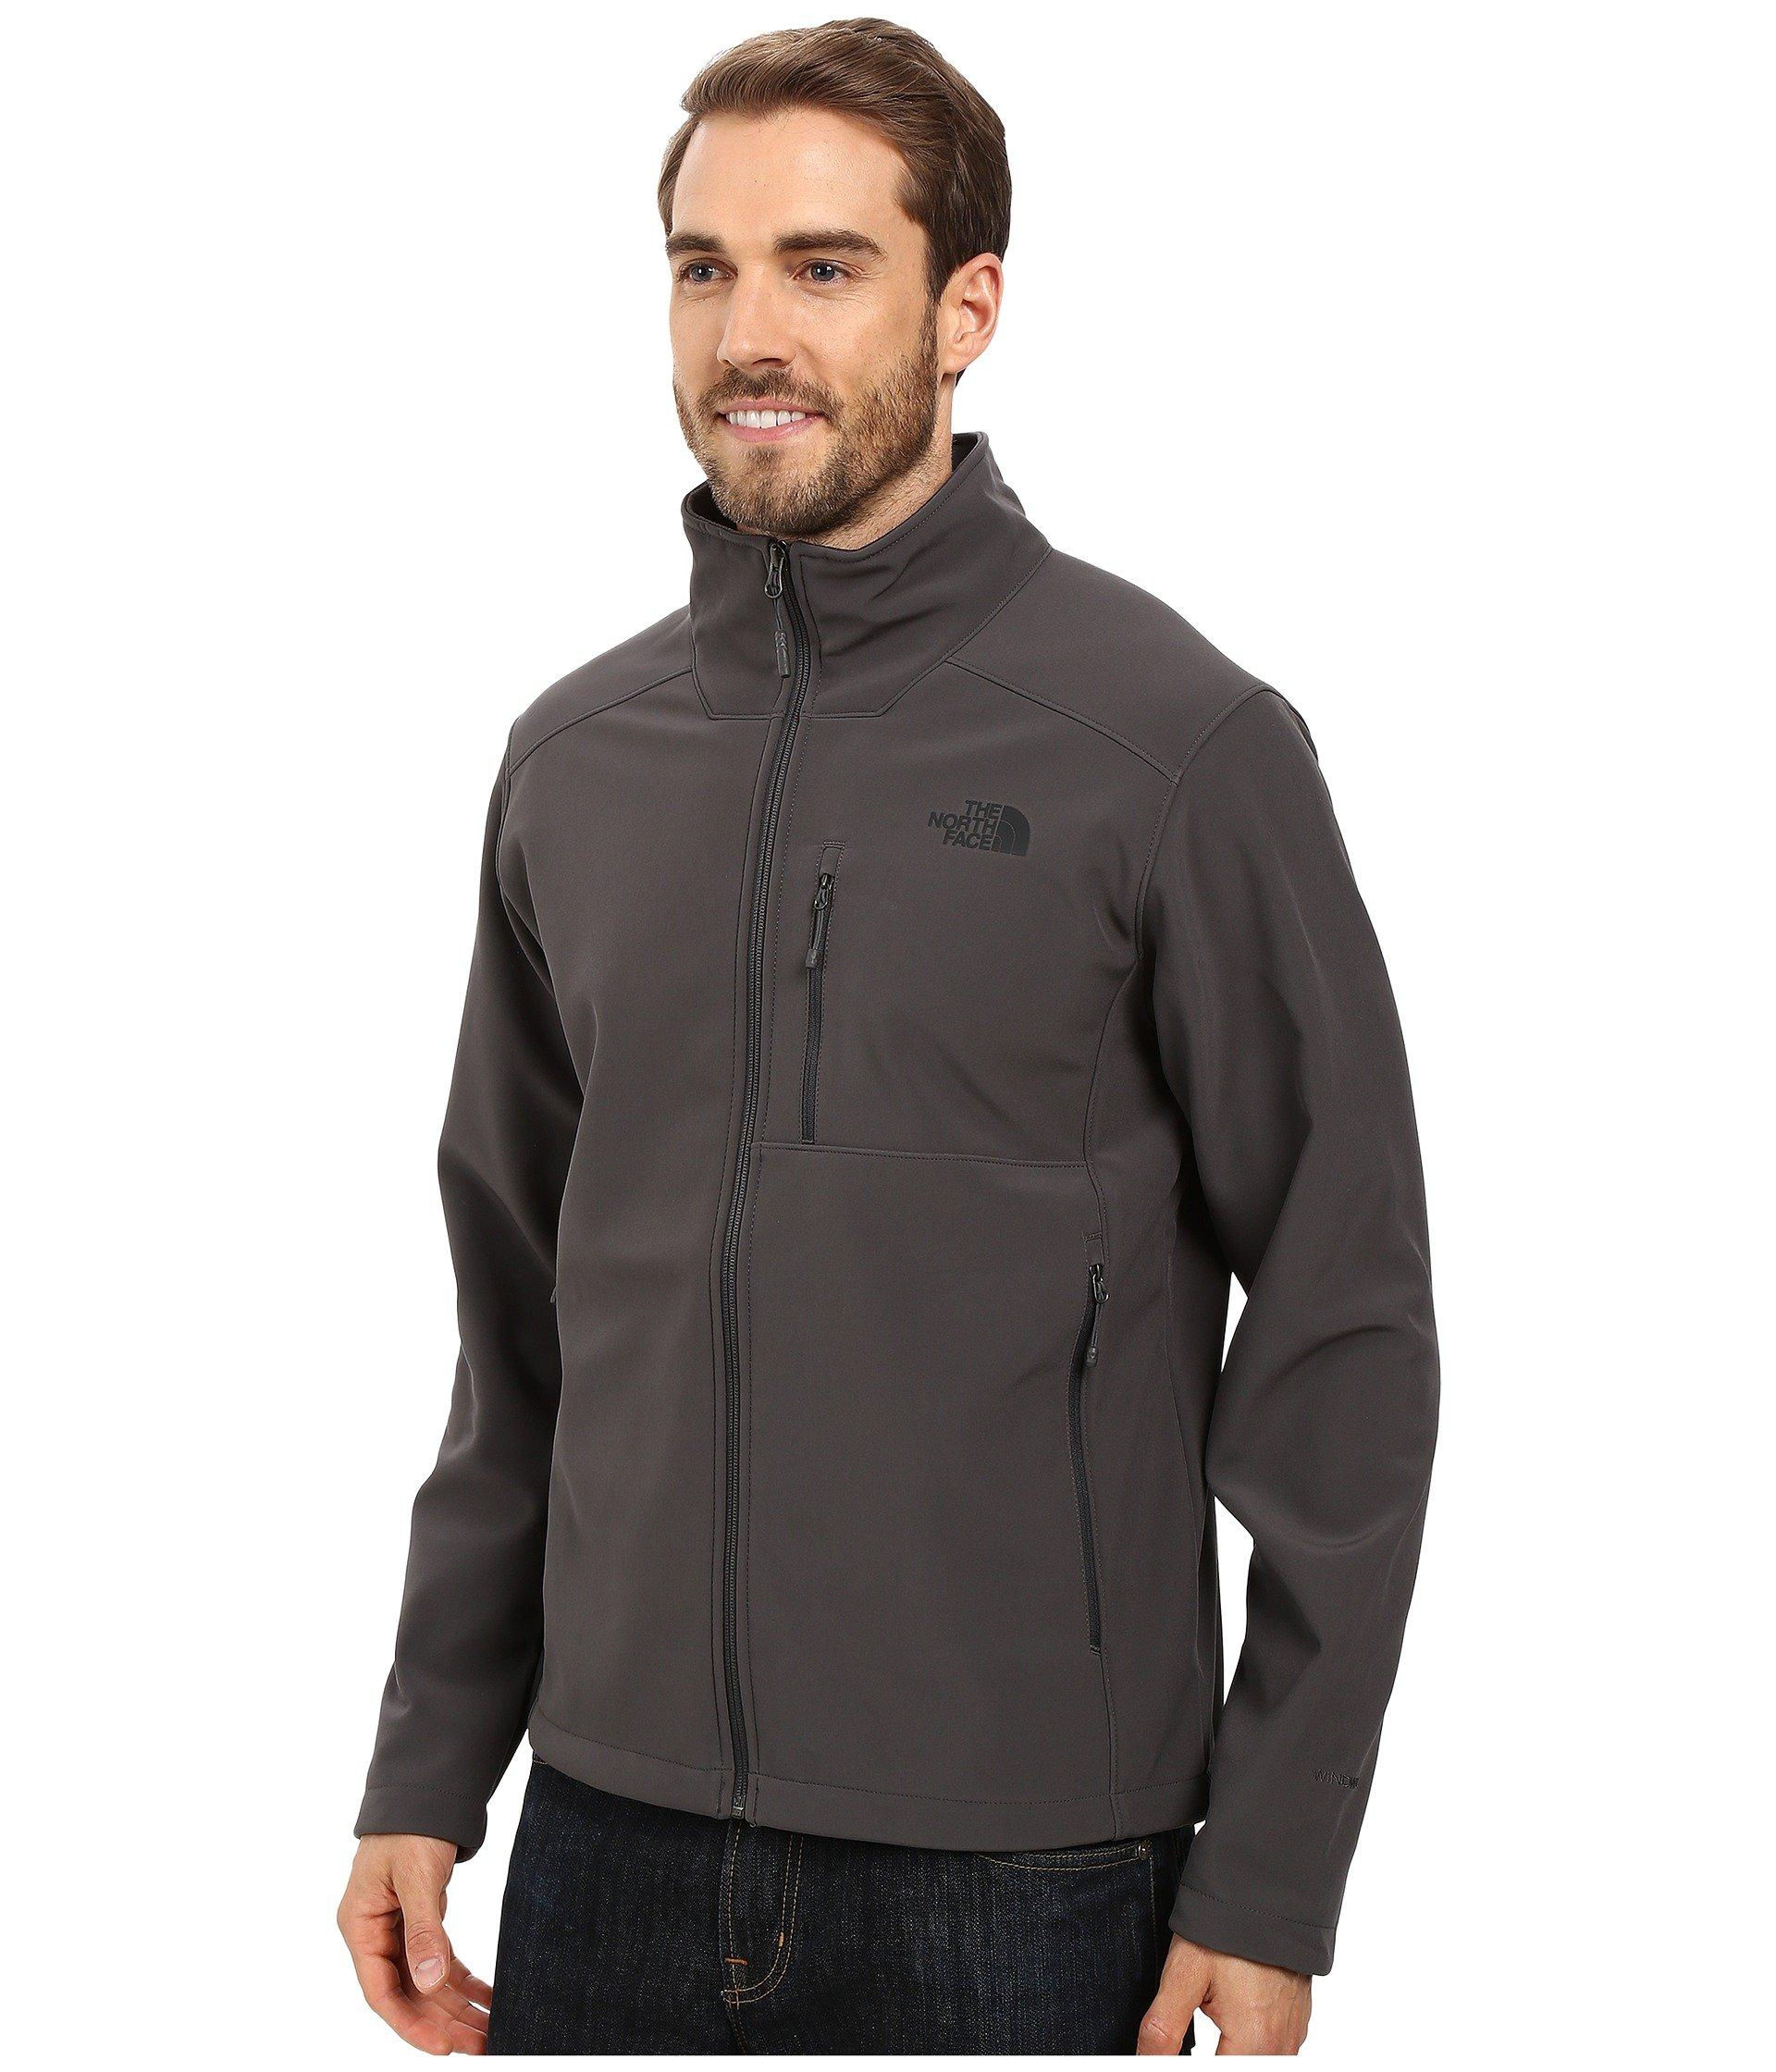 Lyst - The North Face Apex Bionic 2 Jacket (urban Navy Heather) Men s Coat  in Gray for Men - Save 19% 2fe3858088fe